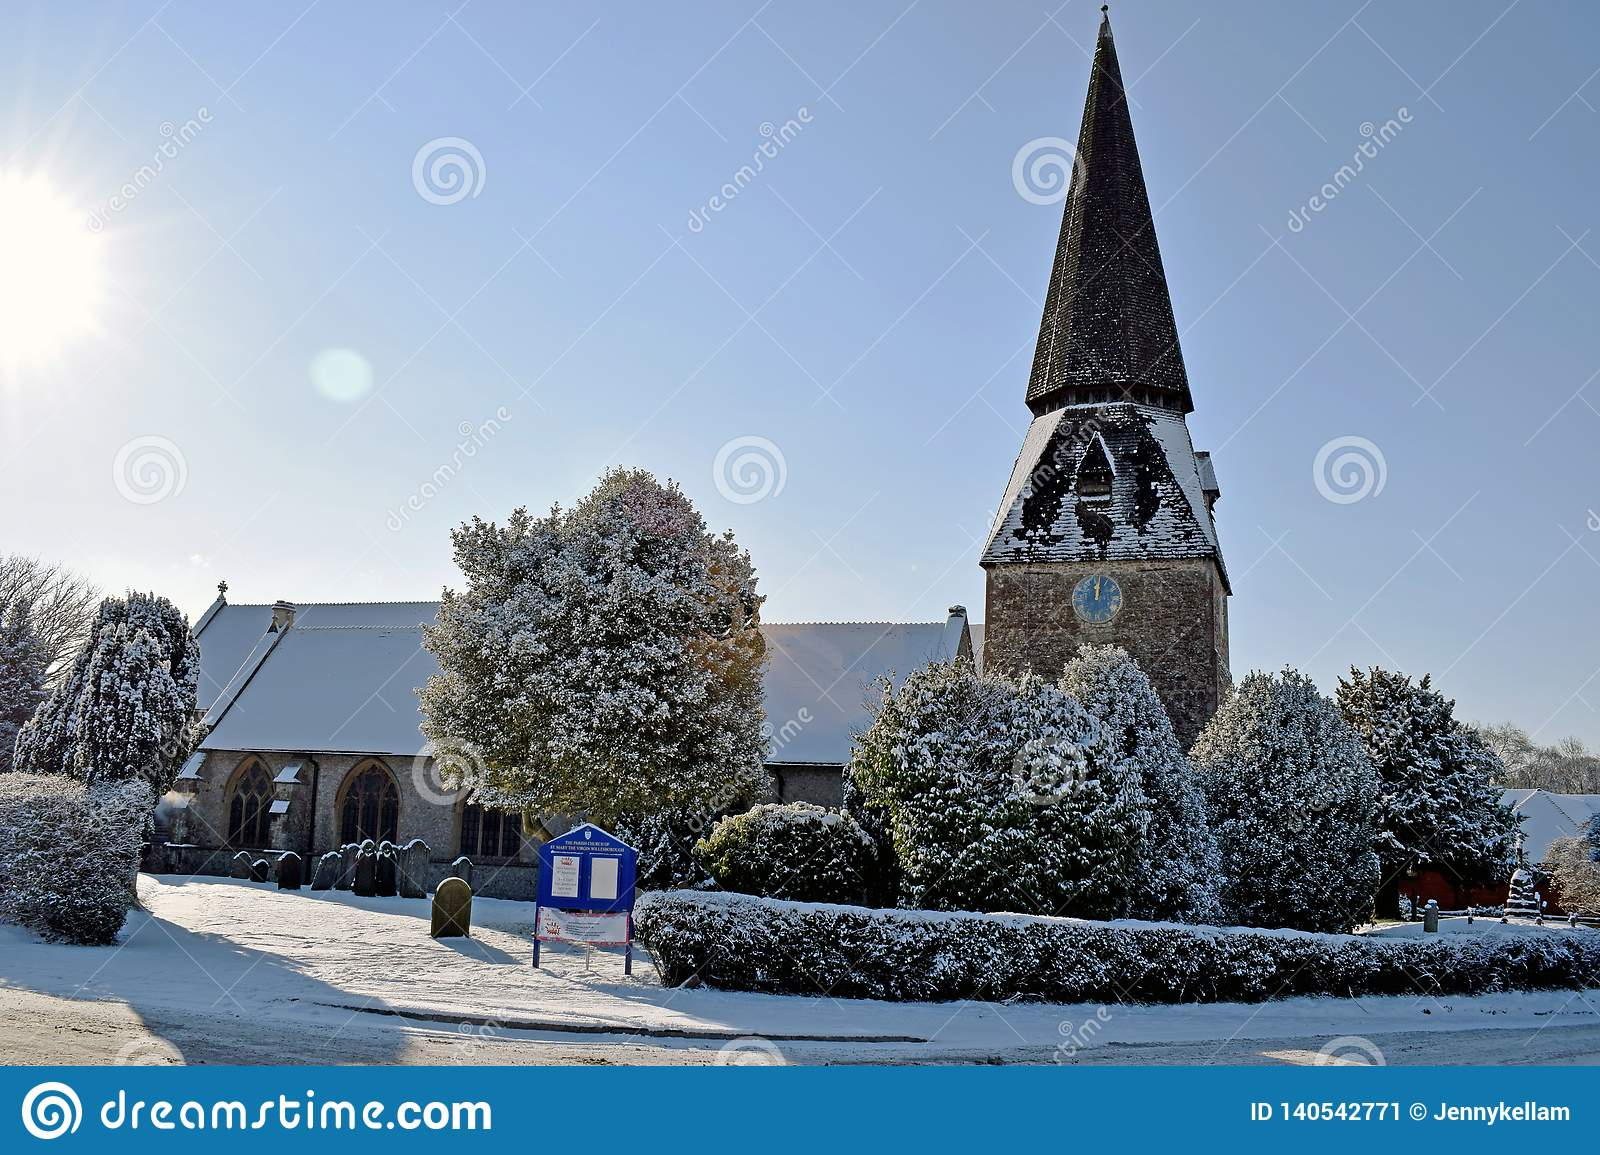 A snowy winter scene of a Church and church yard all cover in white snow